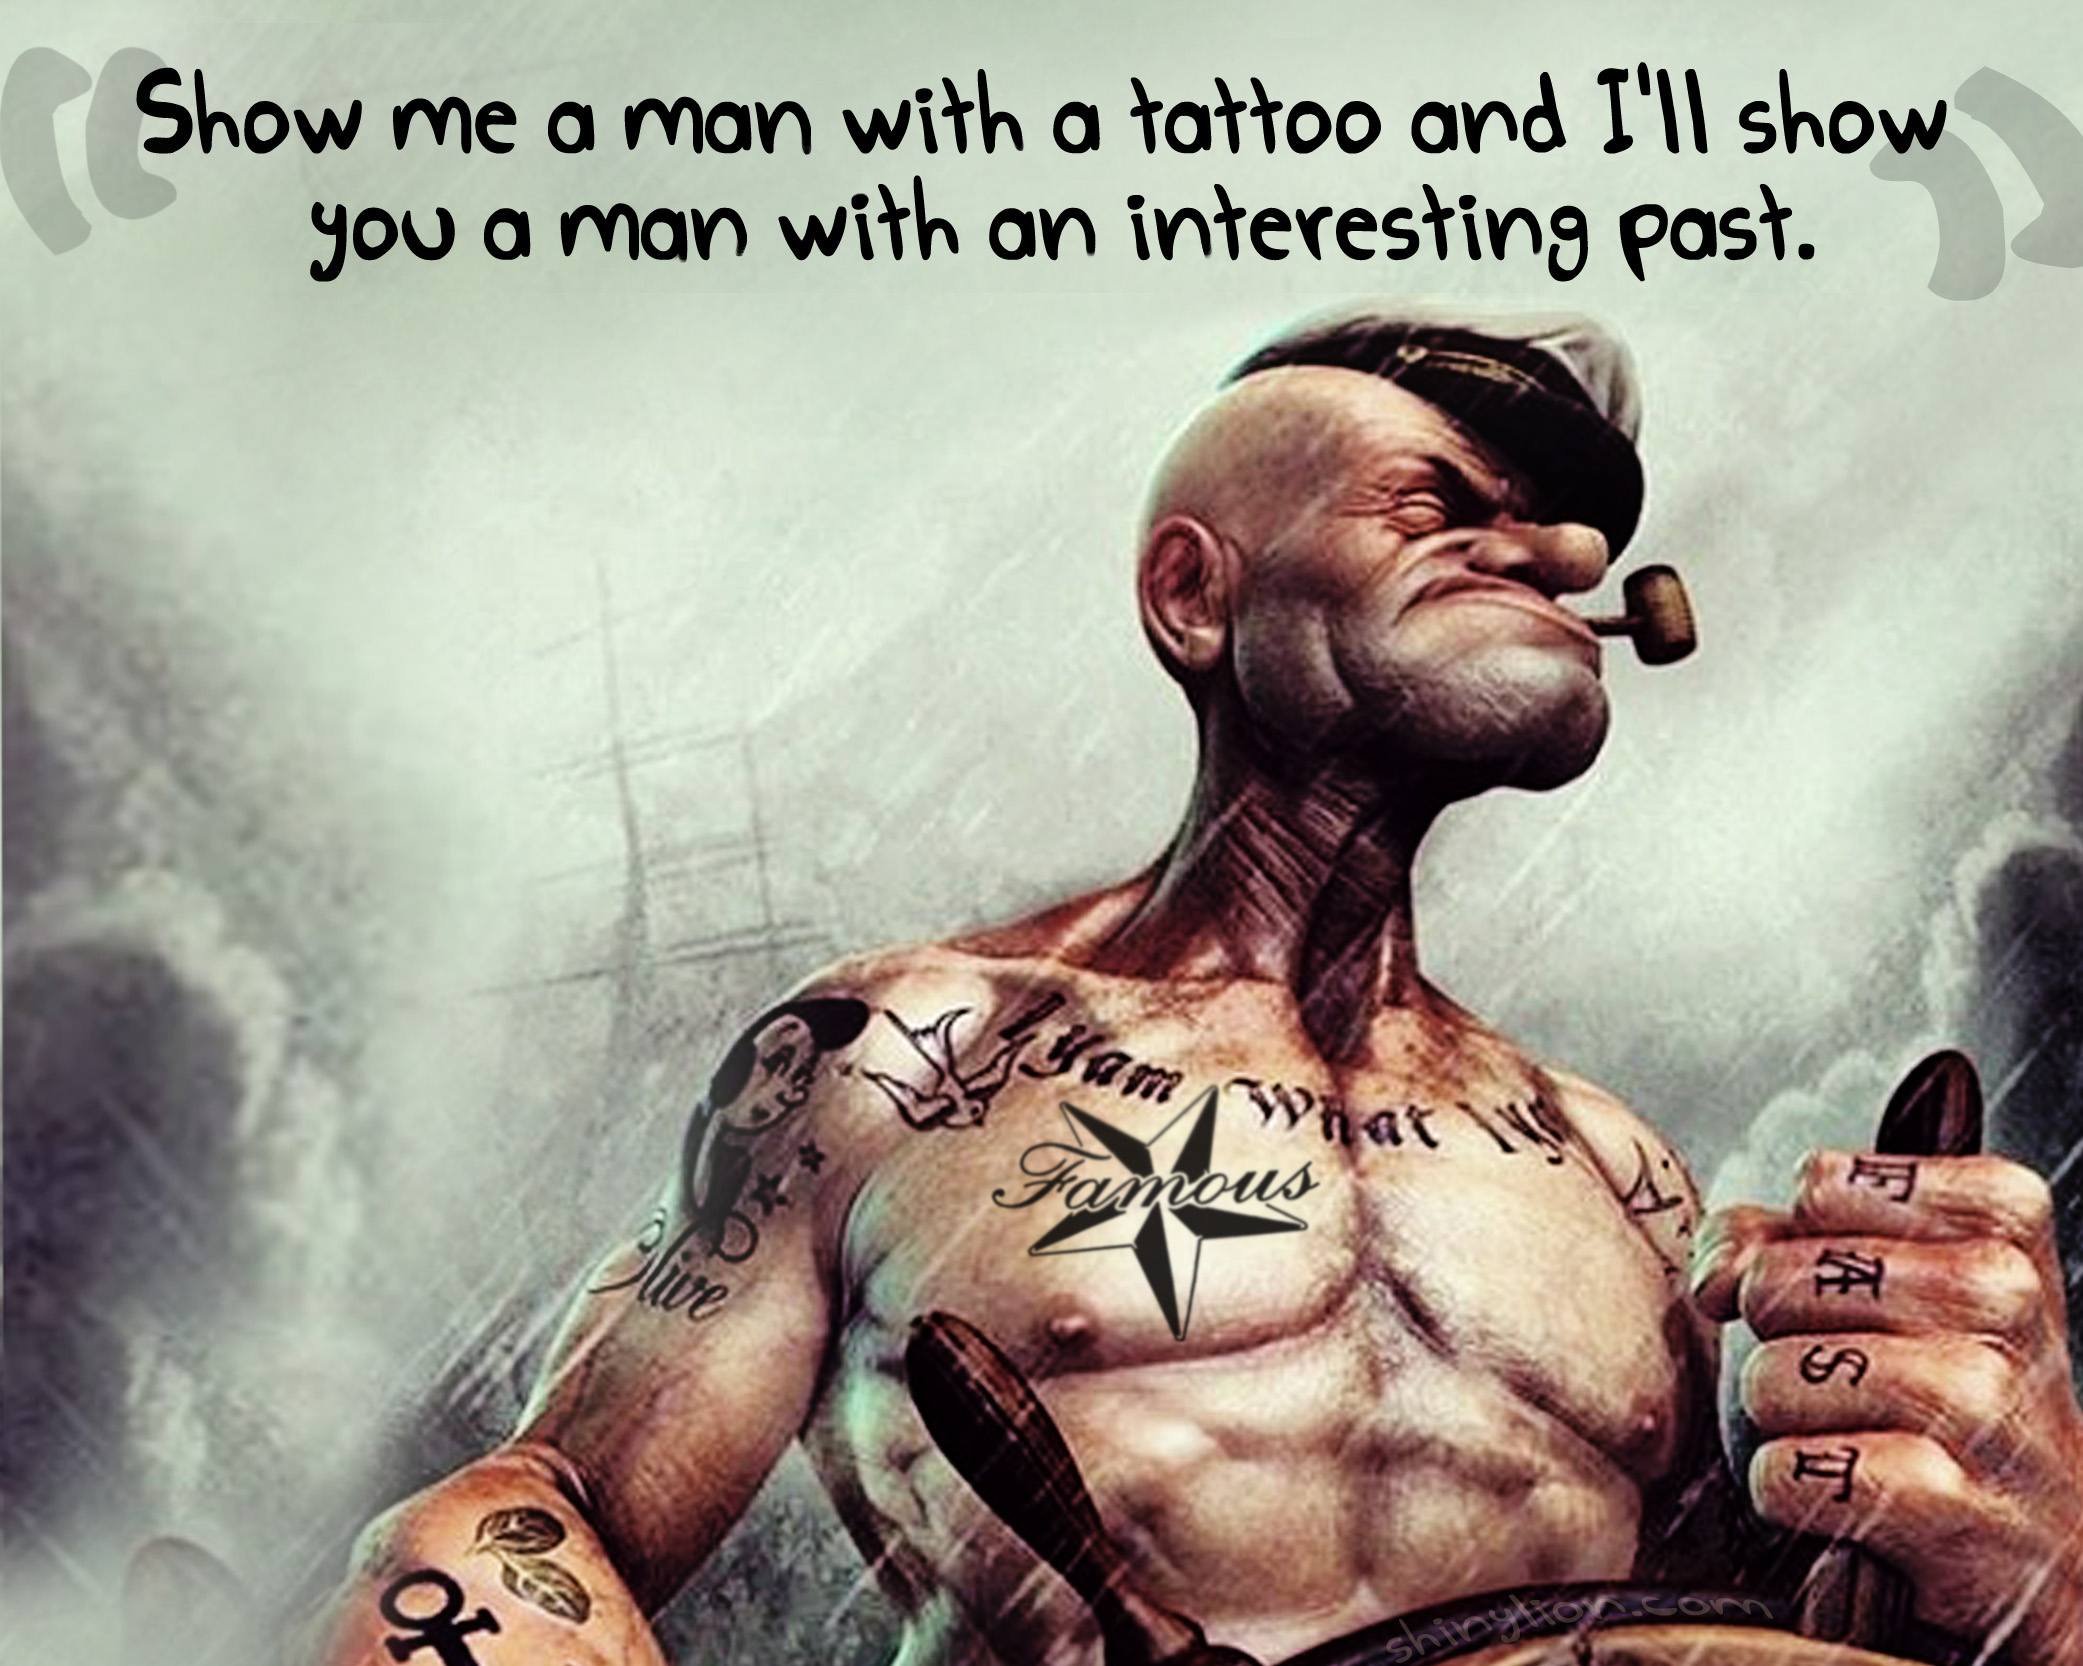 Famous Tattoos & Body Piercing